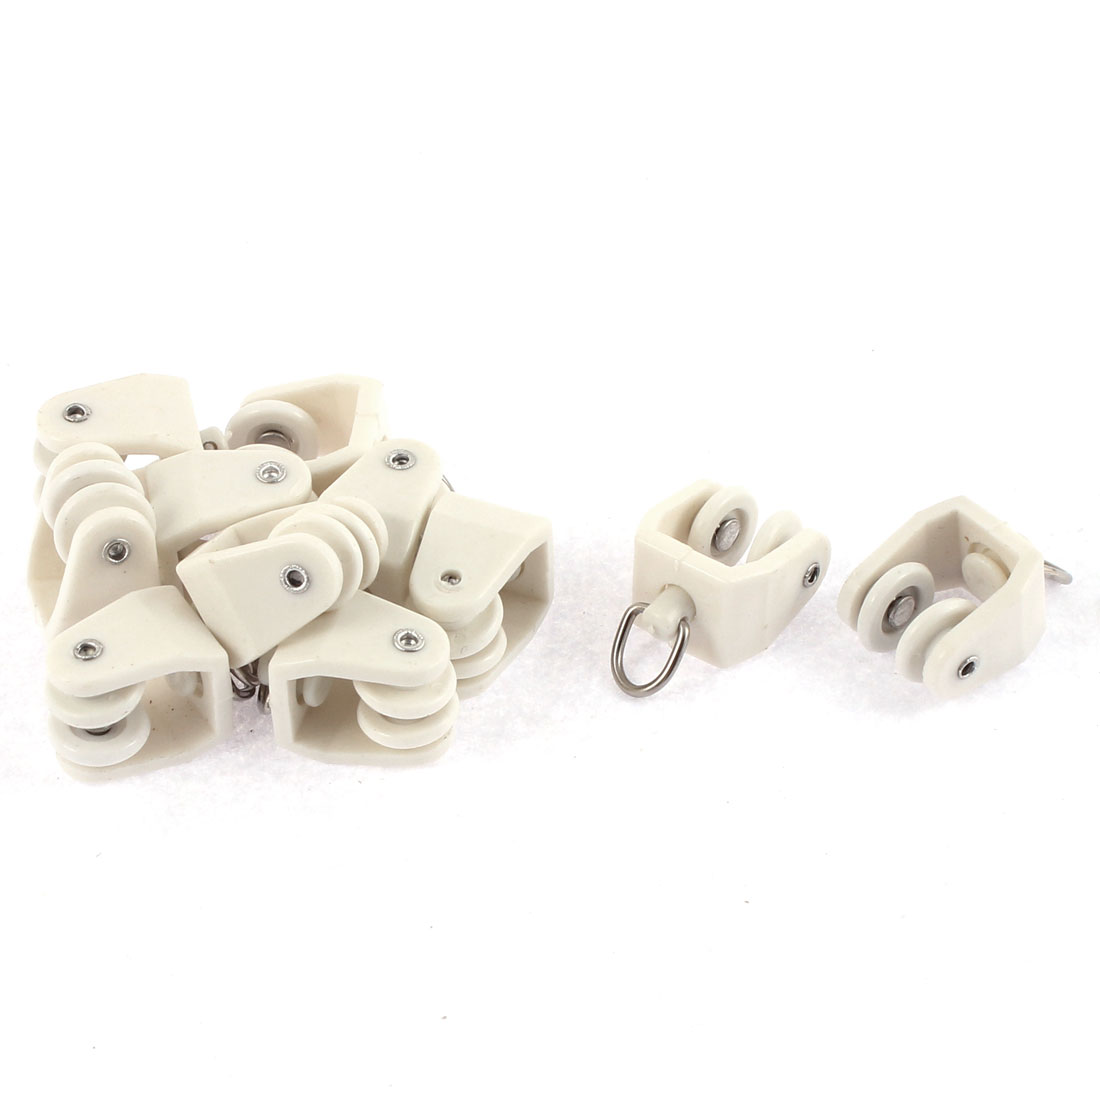 Plastic Swivel Eye Ring Curtain Track Rail Rollers Carrier White 10 Pcs